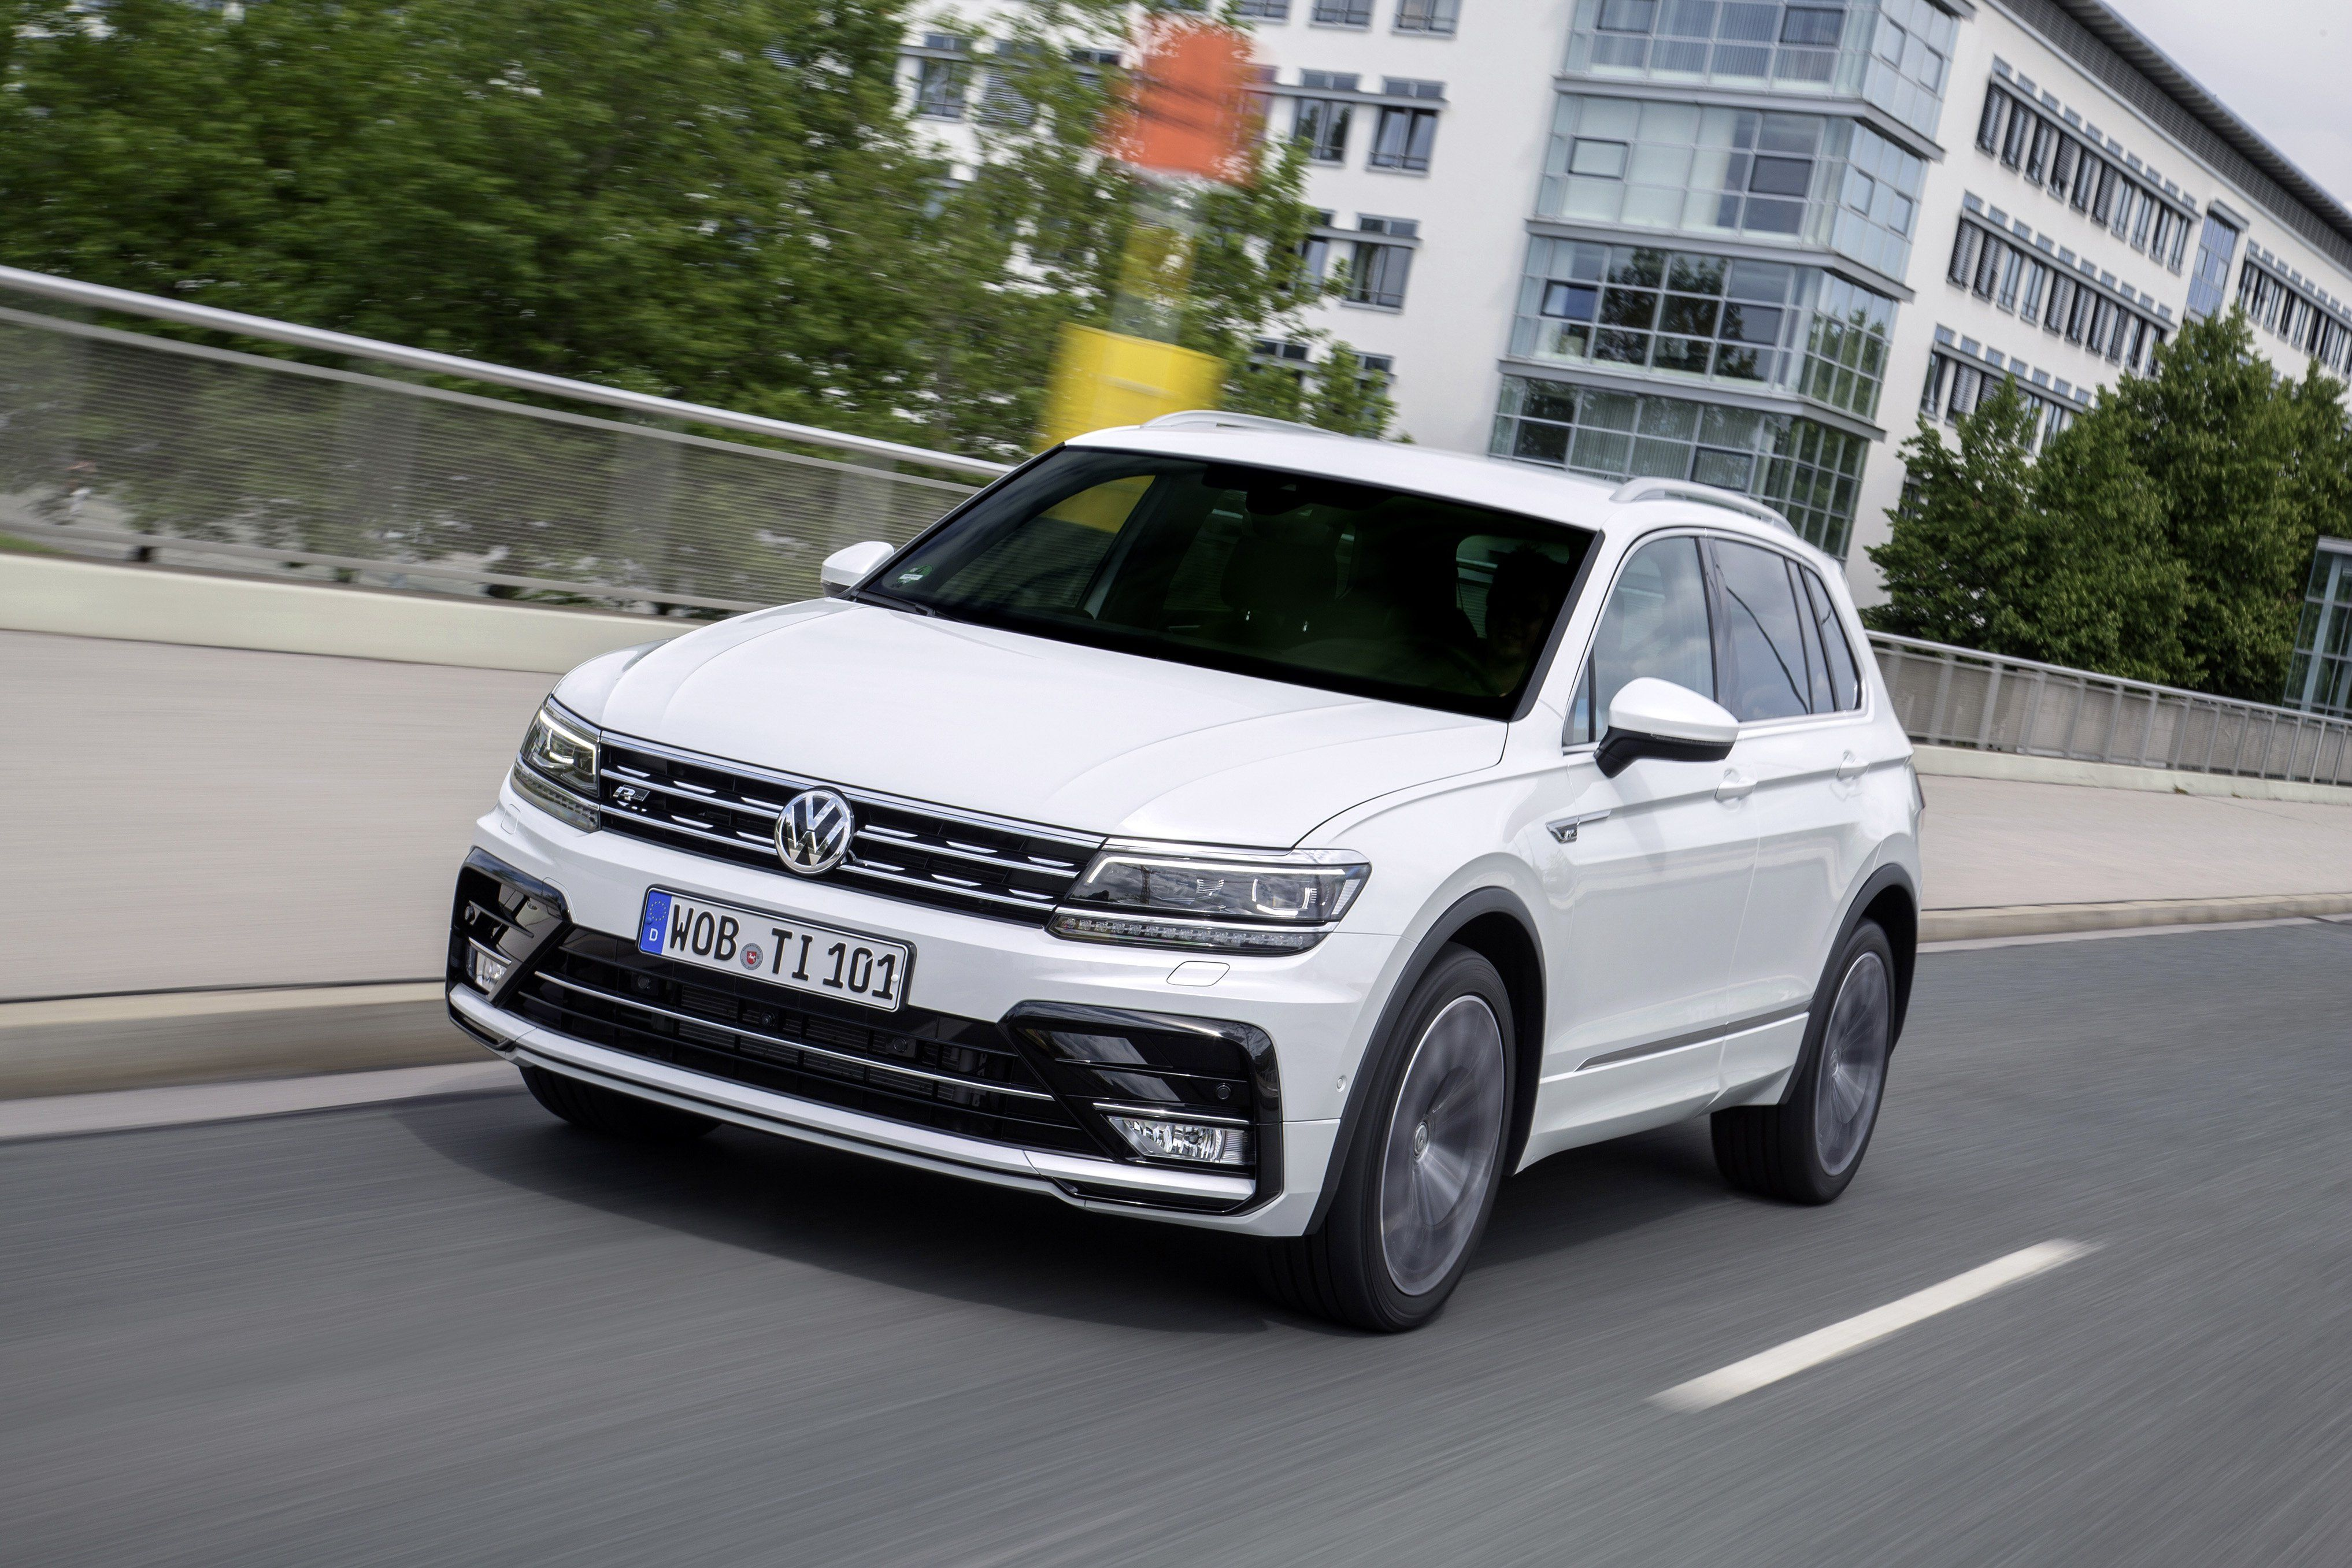 1783631ff6a03e24b92b0b0fd4278ea3 Interesting Info About 2018 Vw Tiguan R Line with Mesmerizing Pictures Cars Review